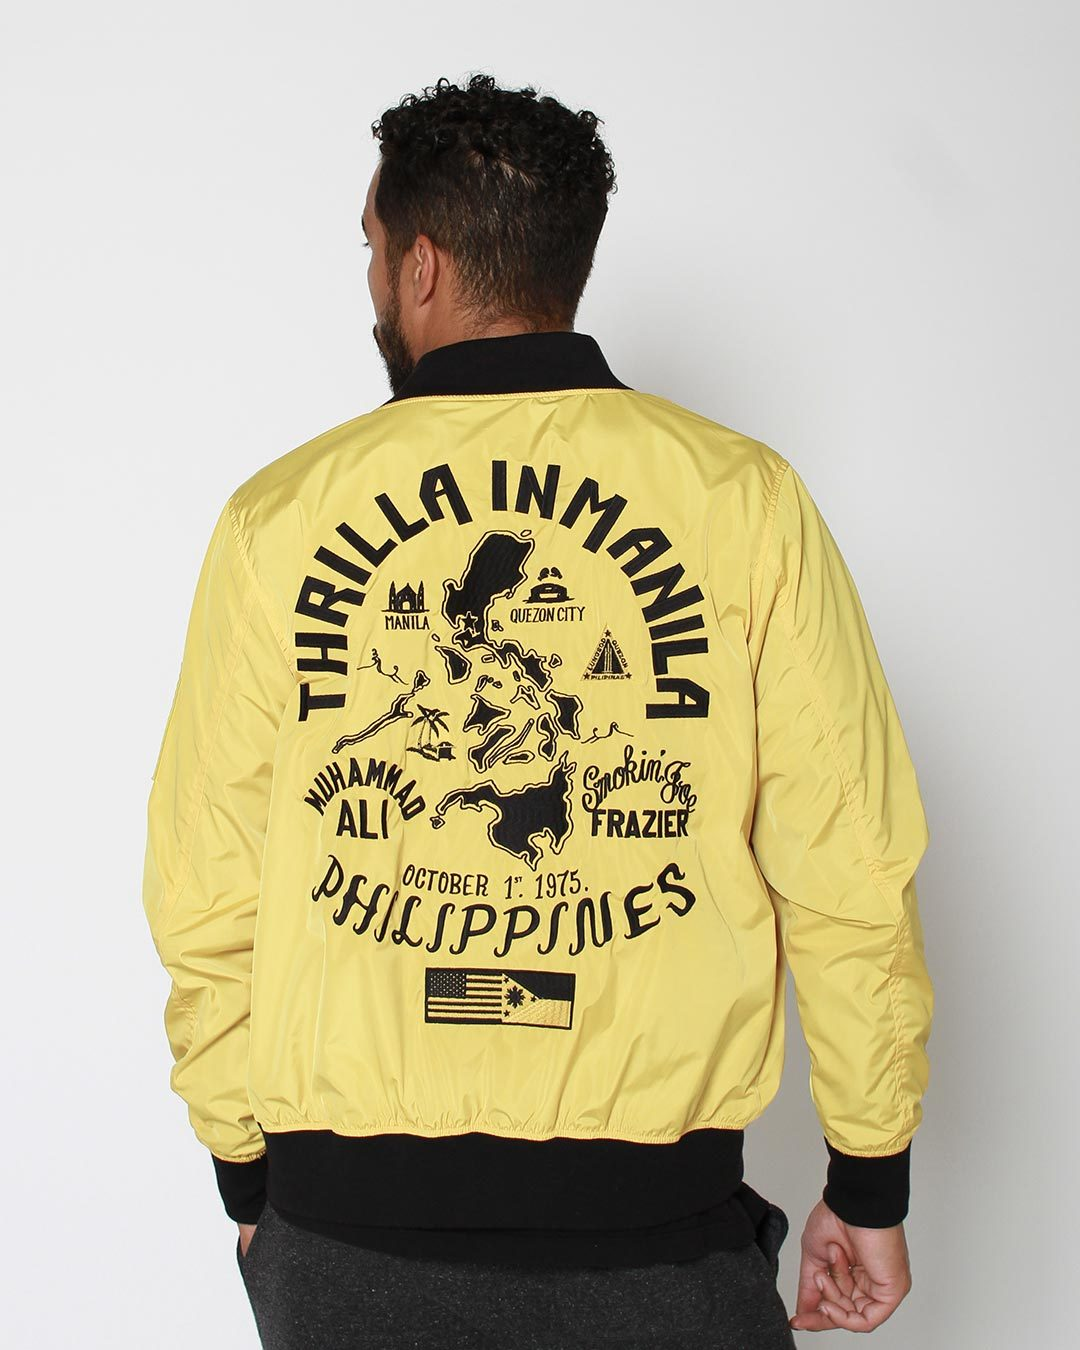 Thrilla in Manila Philippines Stadium Jacket Bundle